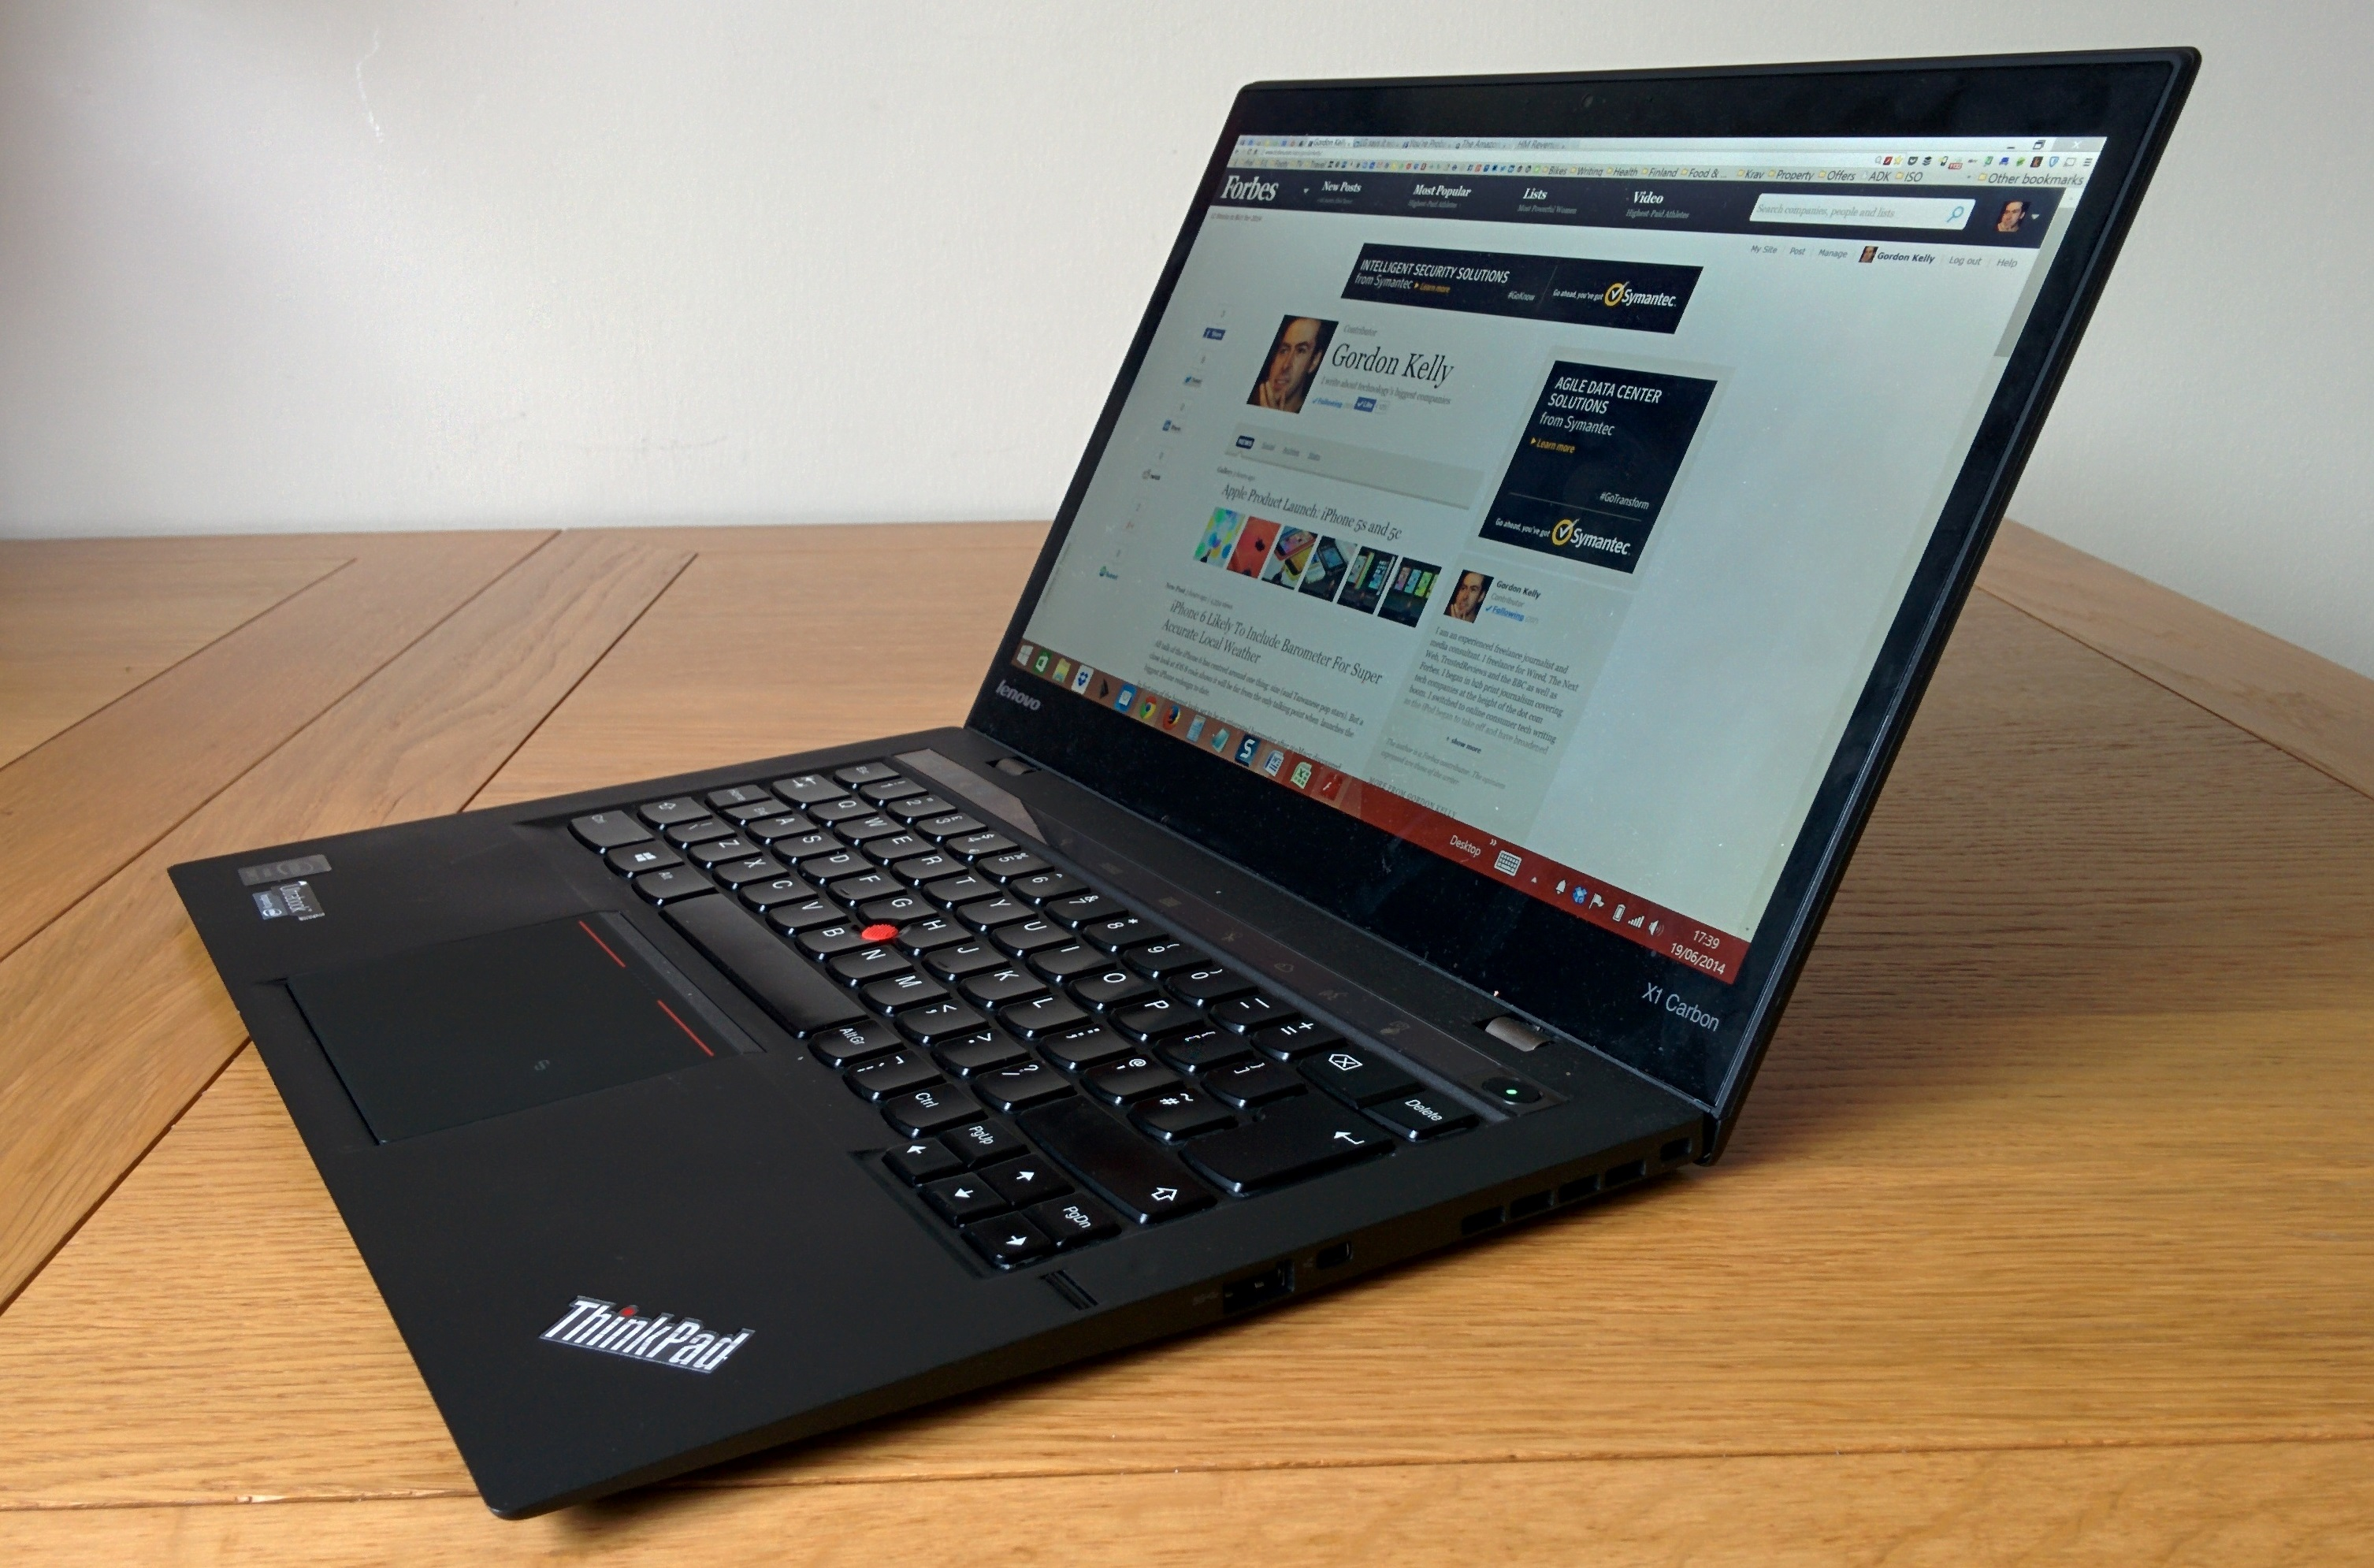 Lenovo ThinkPad X1 Carbon – lightweight laptop